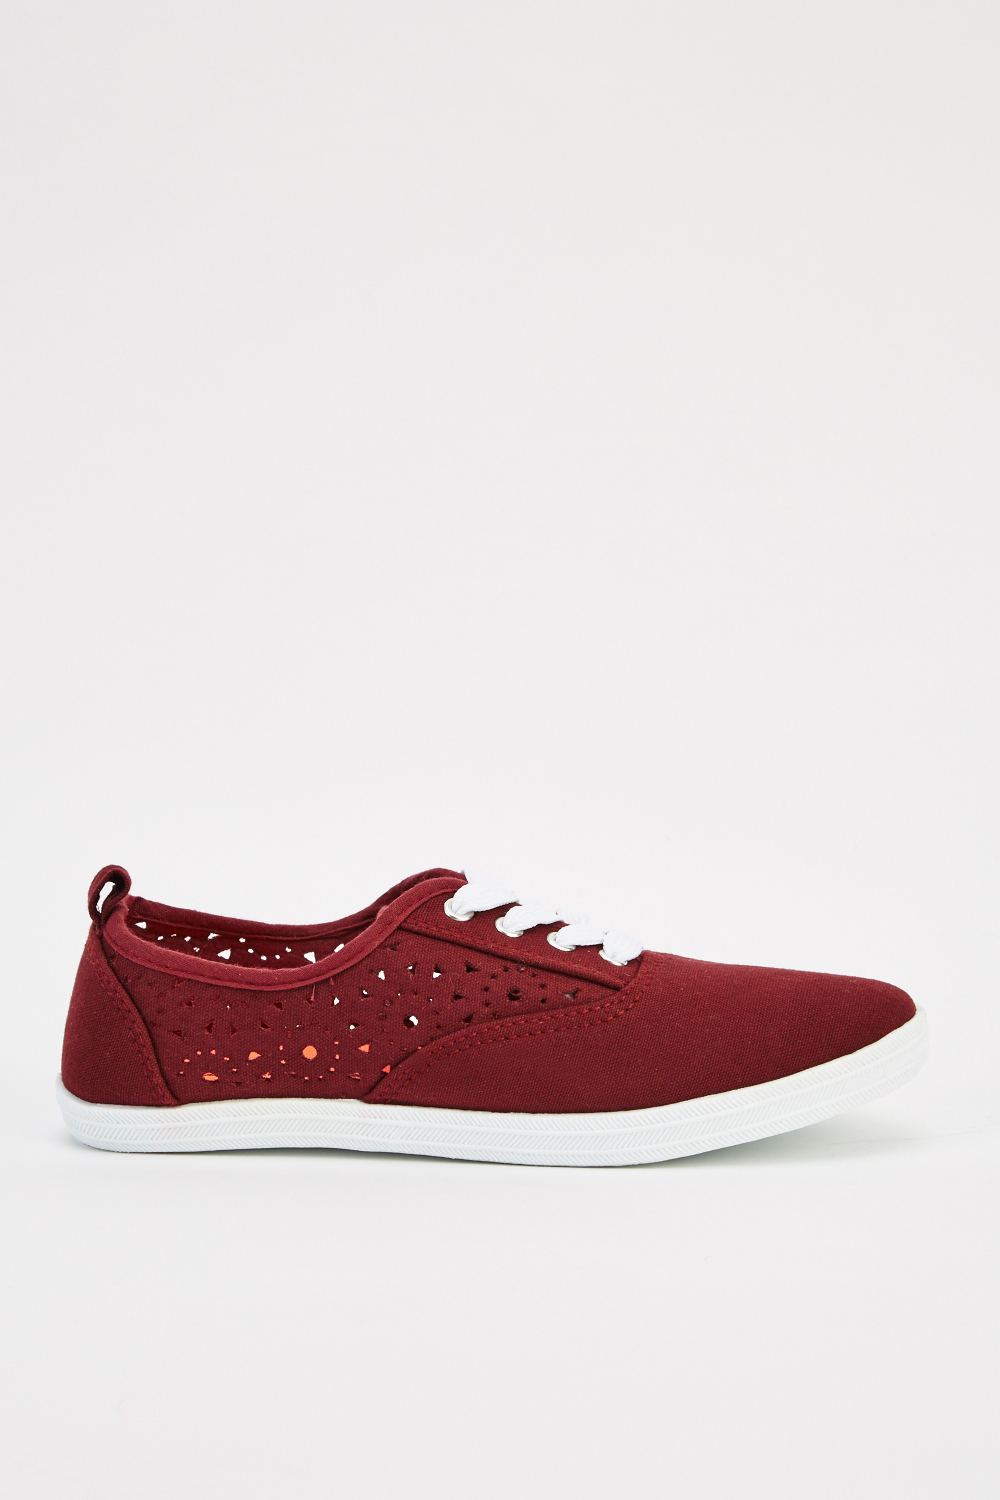 cbdc59ee8b9 Contrast Laser Cut Canvas Shoes - Burgundy - Just £5